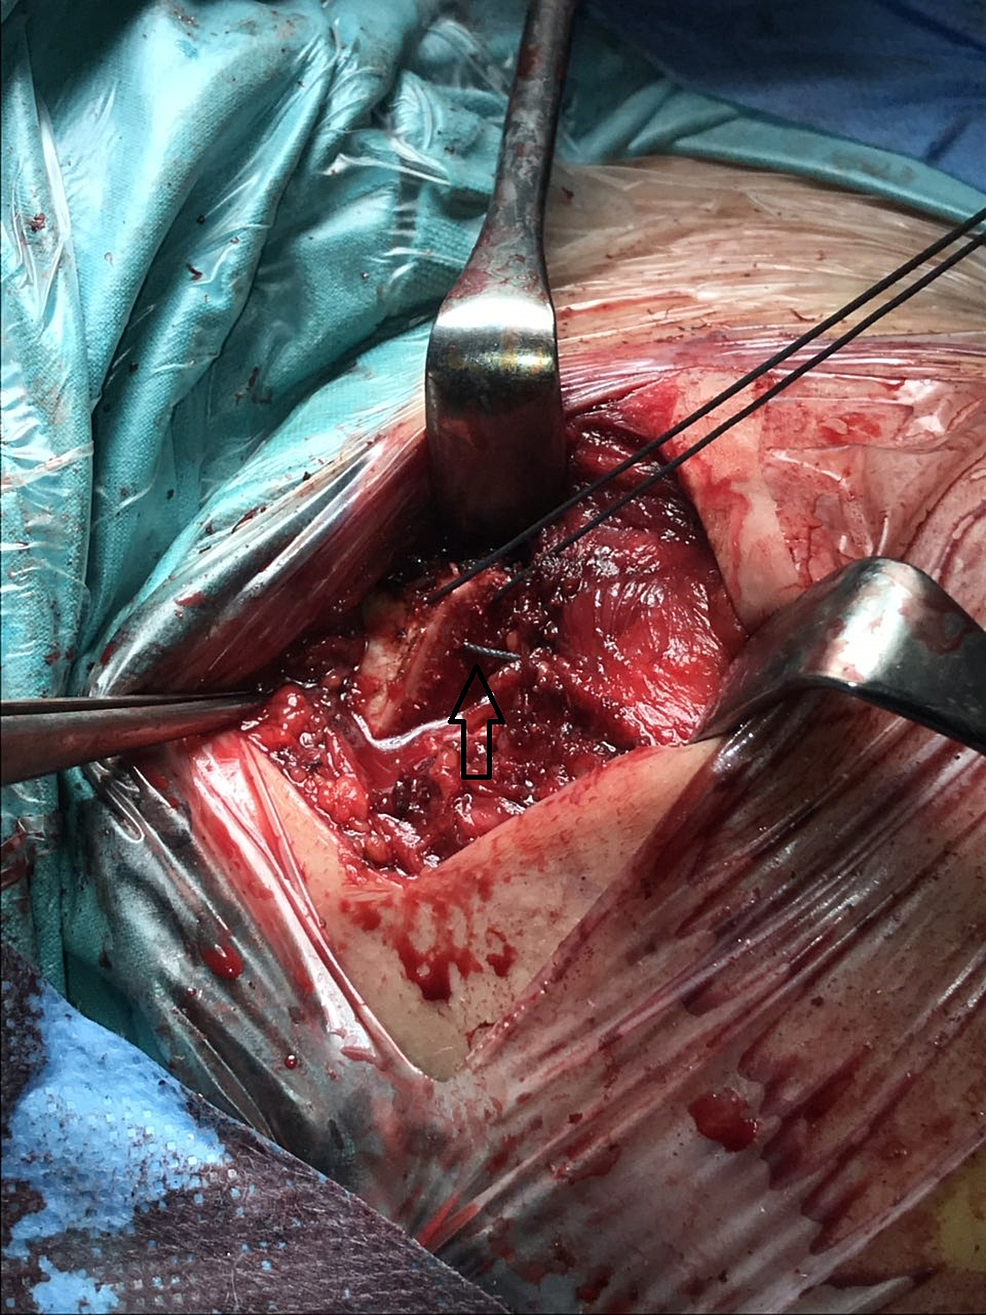 Transosseous-sutures-for-the-reattachment-of-the-anterior-deltoid-muscle-to-the-clavicle-bone.